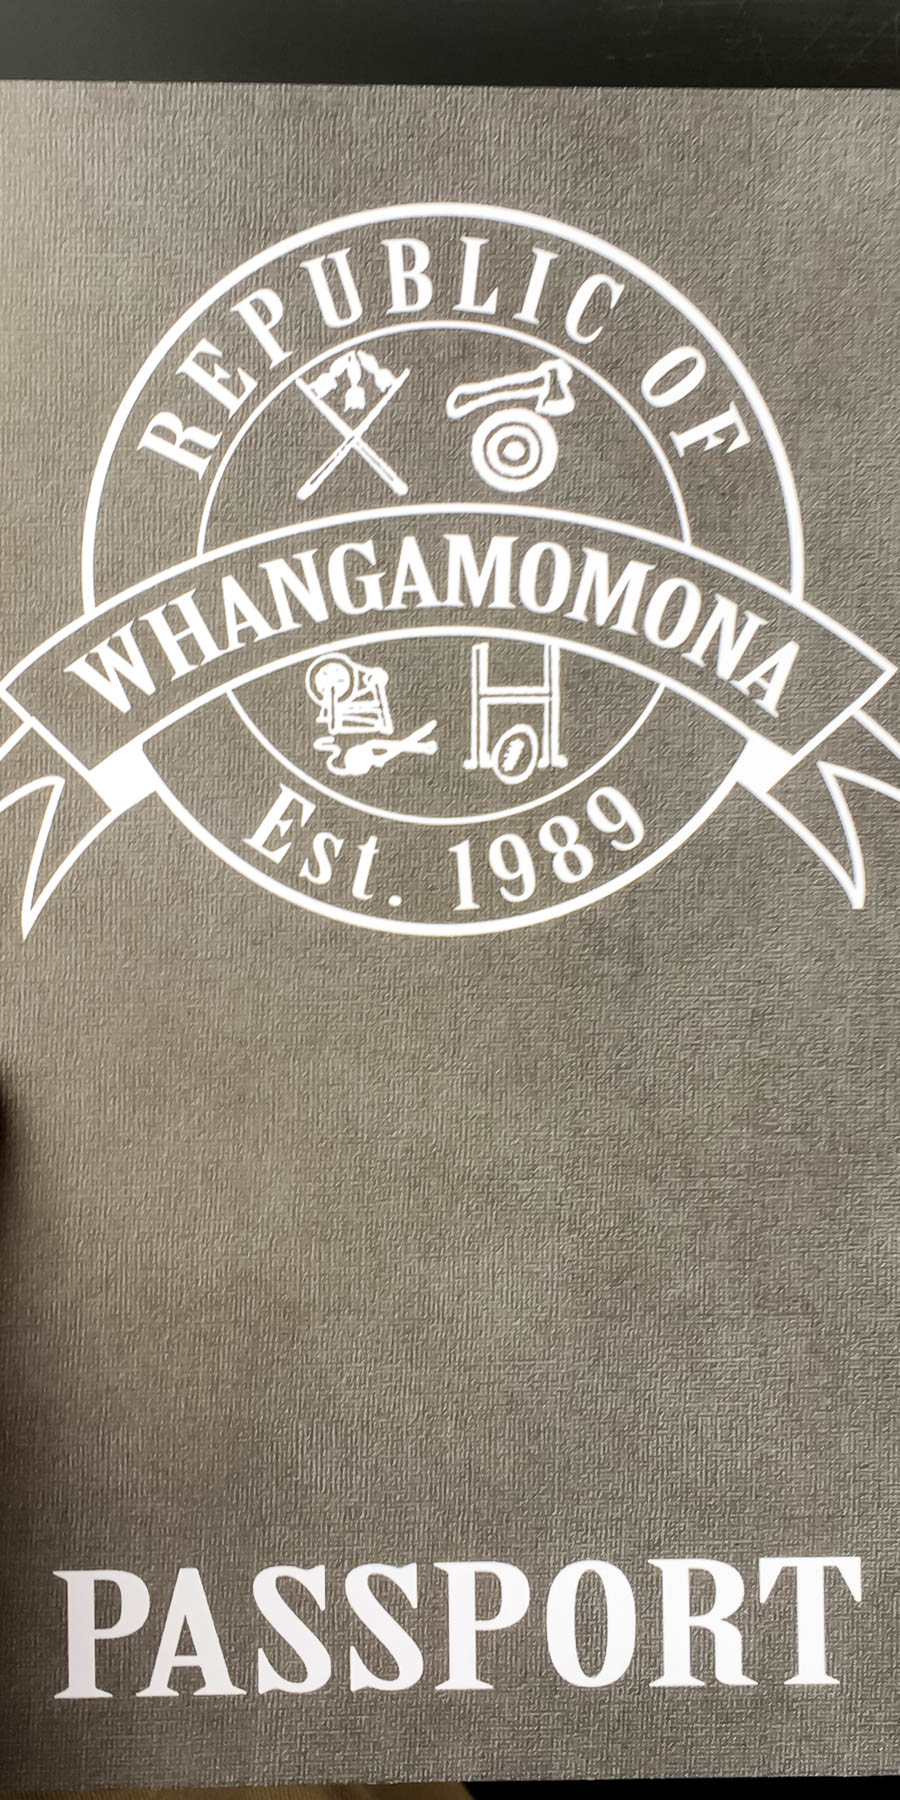 1. Whangamamona & The Forgotten Highway